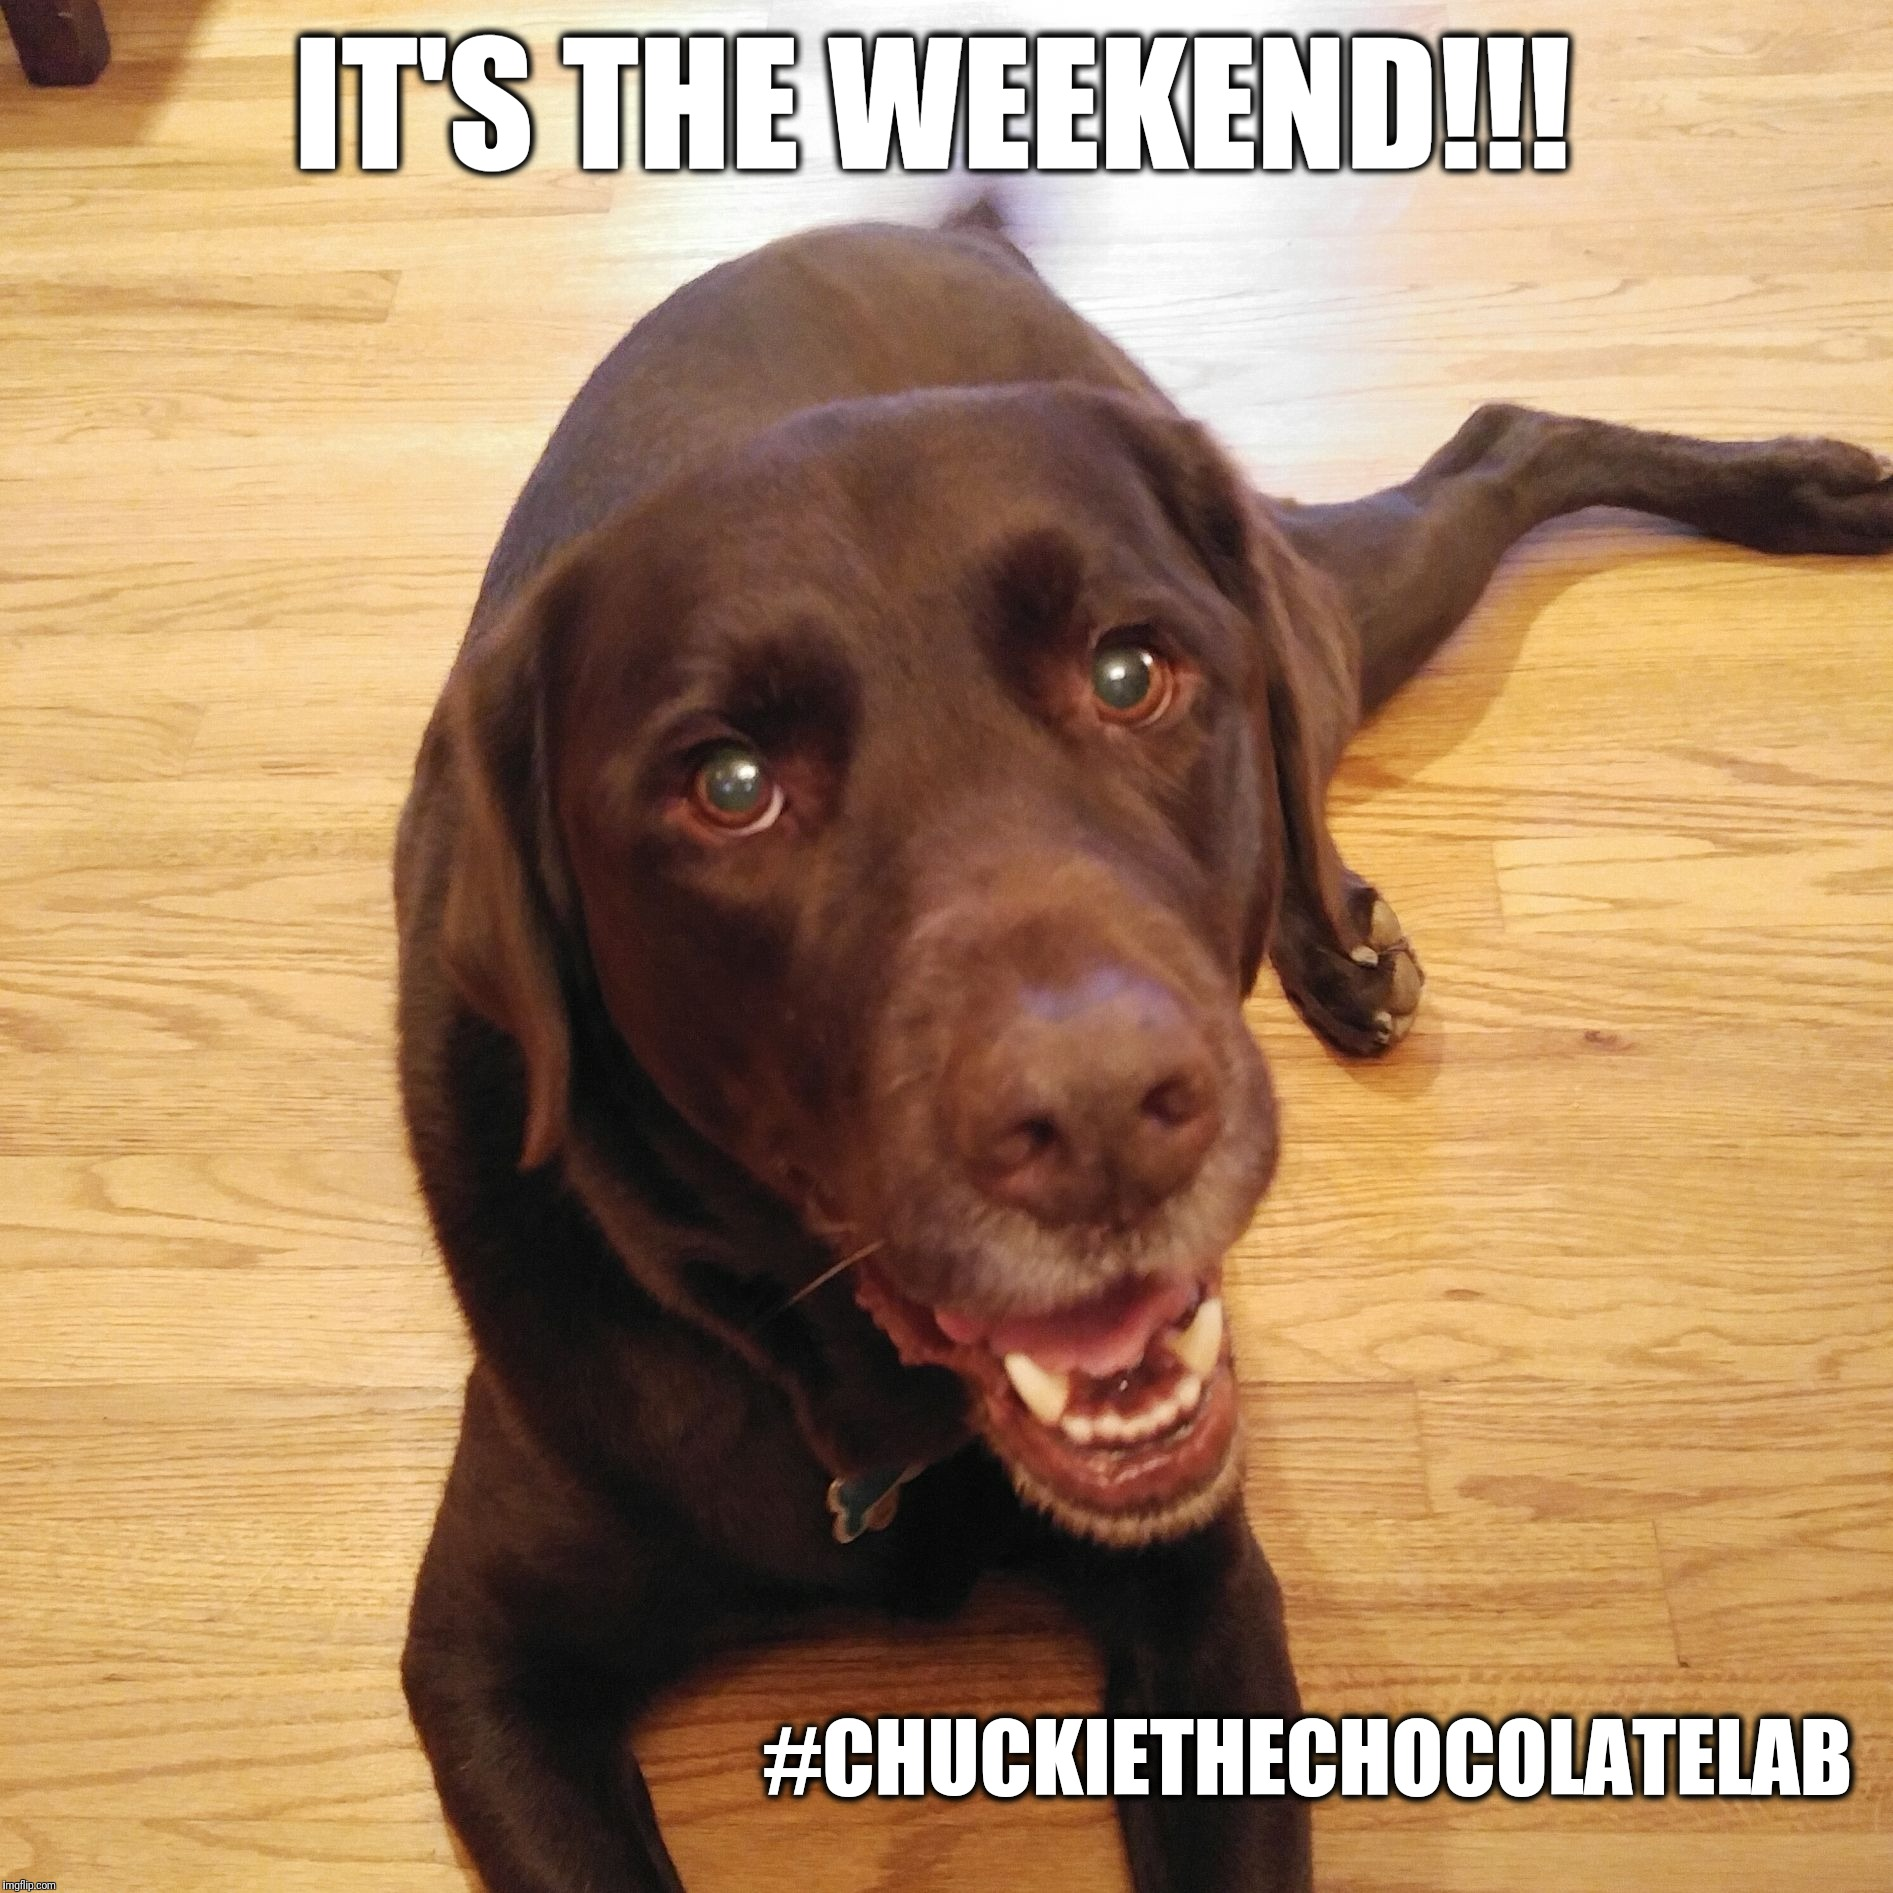 IT'S THE WEEKEND!!! #CHUCKIETHECHOCOLATELAB | image tagged in chuckie the chocolate lab | made w/ Imgflip meme maker